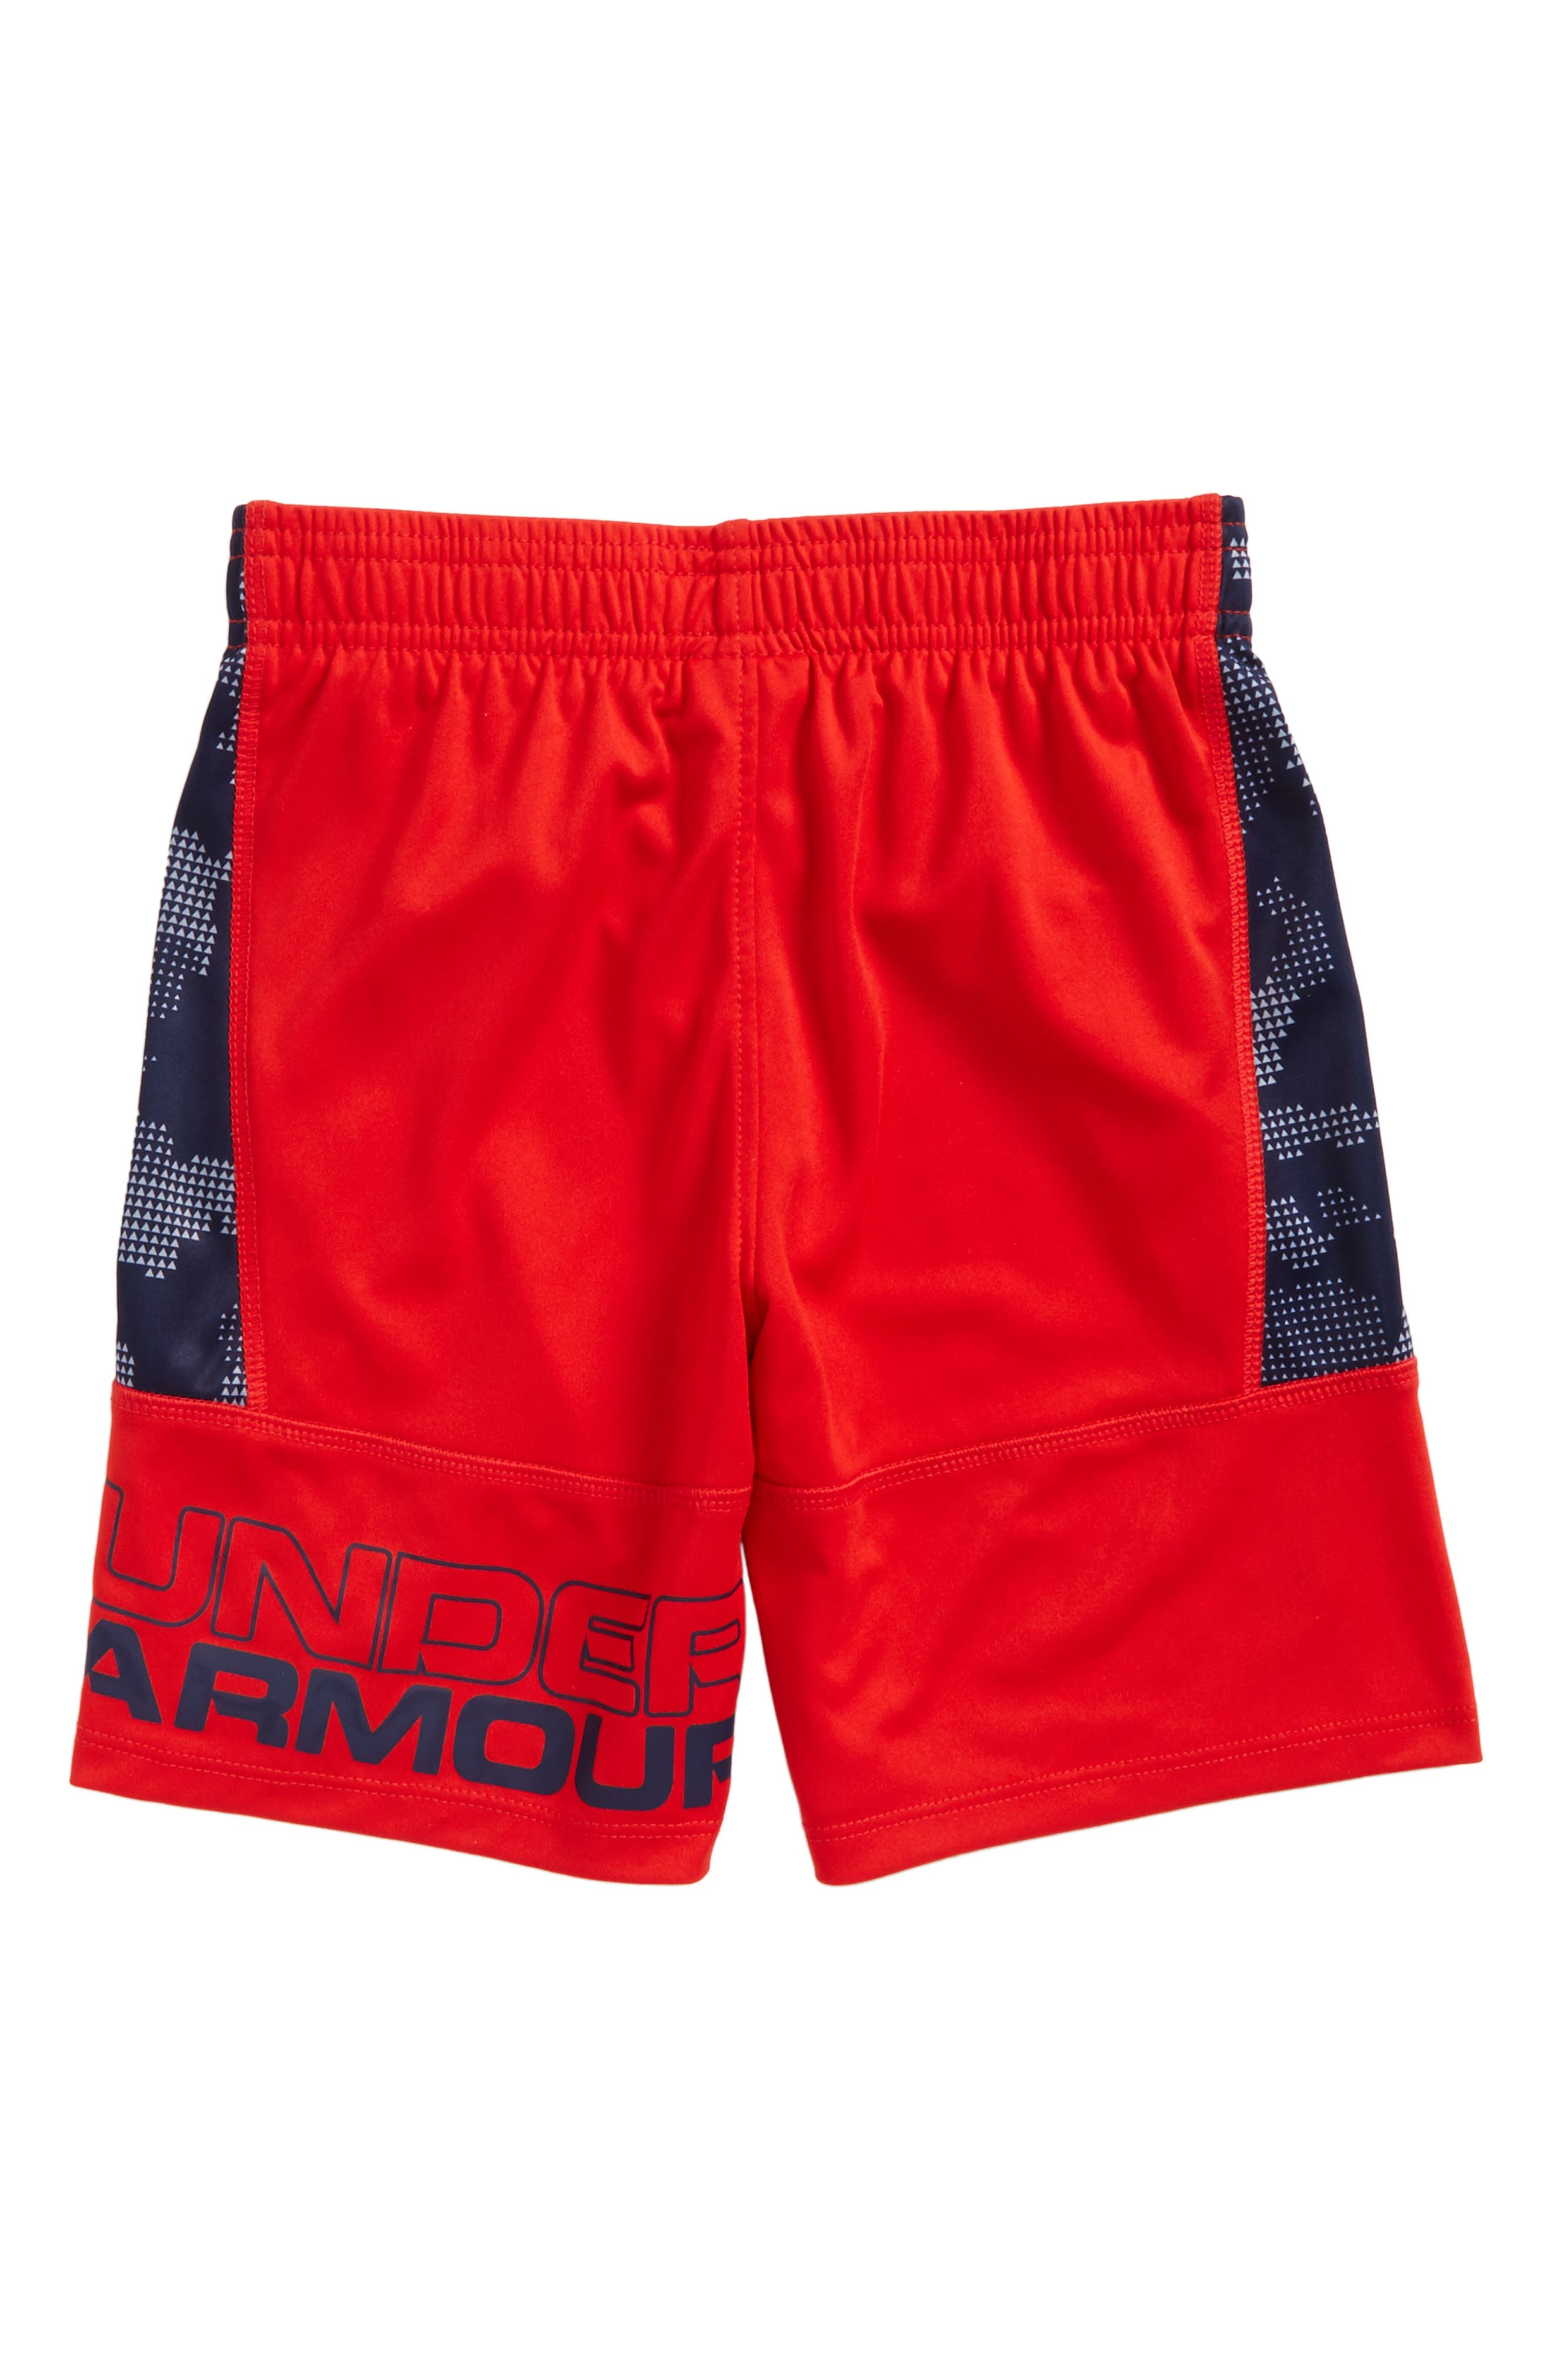 Utility Camo Stunt Athletic Shorts,                             Alternate thumbnail 2, color,                             Red